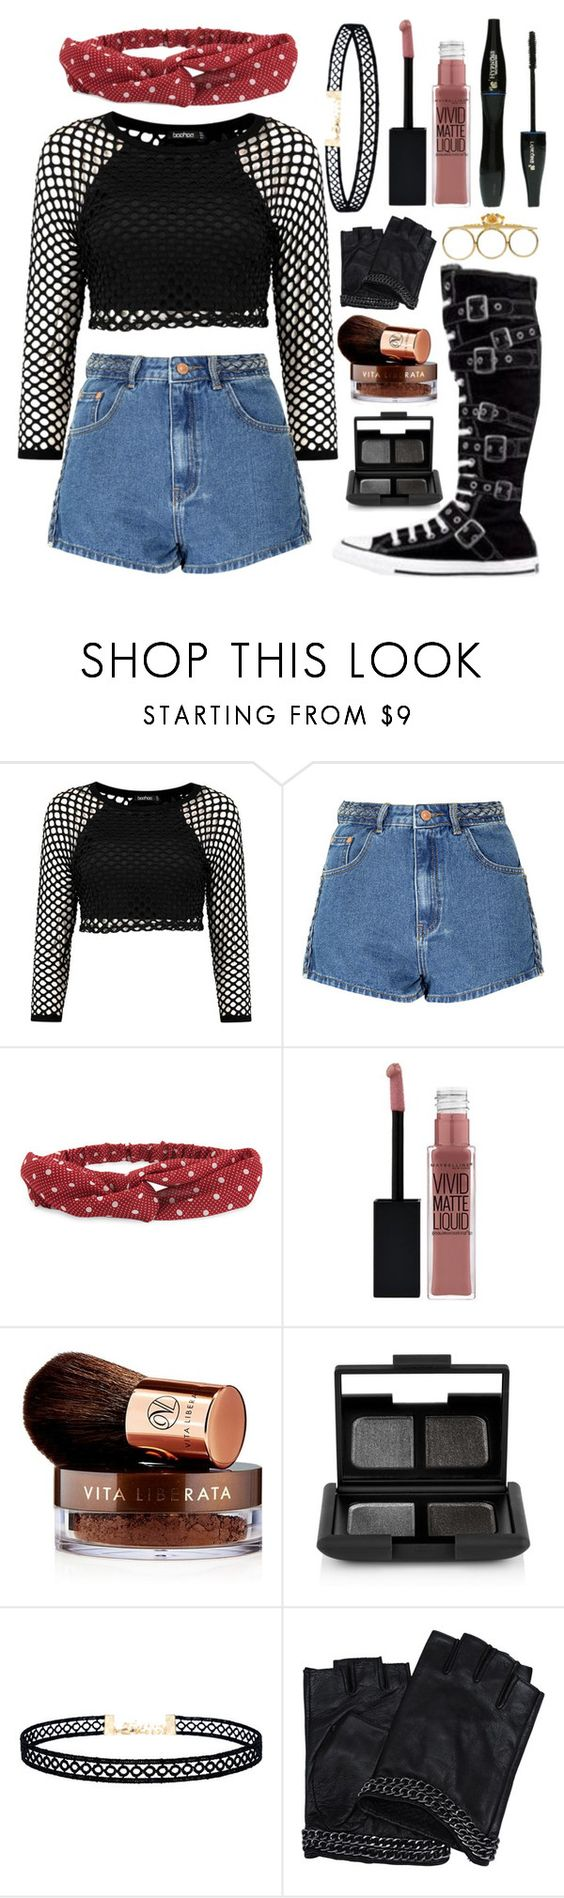 """""""❊Turn up the lights in here baby, extra bright I want y'all to see this"""" by nerd-ville ❤ liked on Polyvore featuring Glamorous, Converse, Aéropostale, Lancôme, Maybelline, Vita Liberata, NARS Cosmetics, LULUS, Karl Lagerfeld and Katie Rowland"""